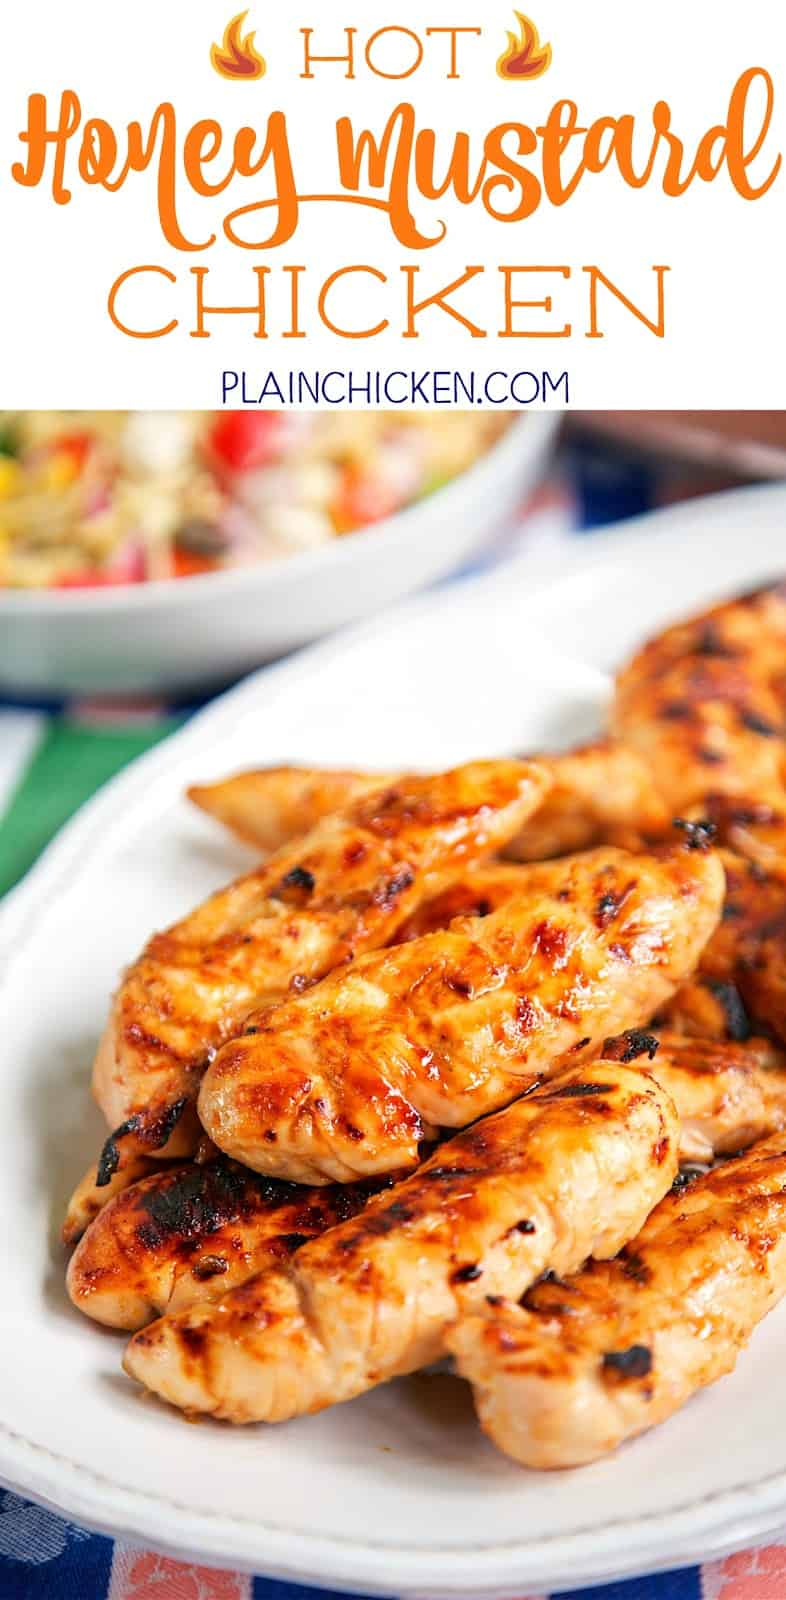 Hot Honey Mustard Chicken - only 4 ingredients including the chicken! Honey, mustard, hot sauce and chicken. Can grill or cook on the stove. This chicken is CRAZY good! Sweet with a little heat! Great for a crowd and tailgating!